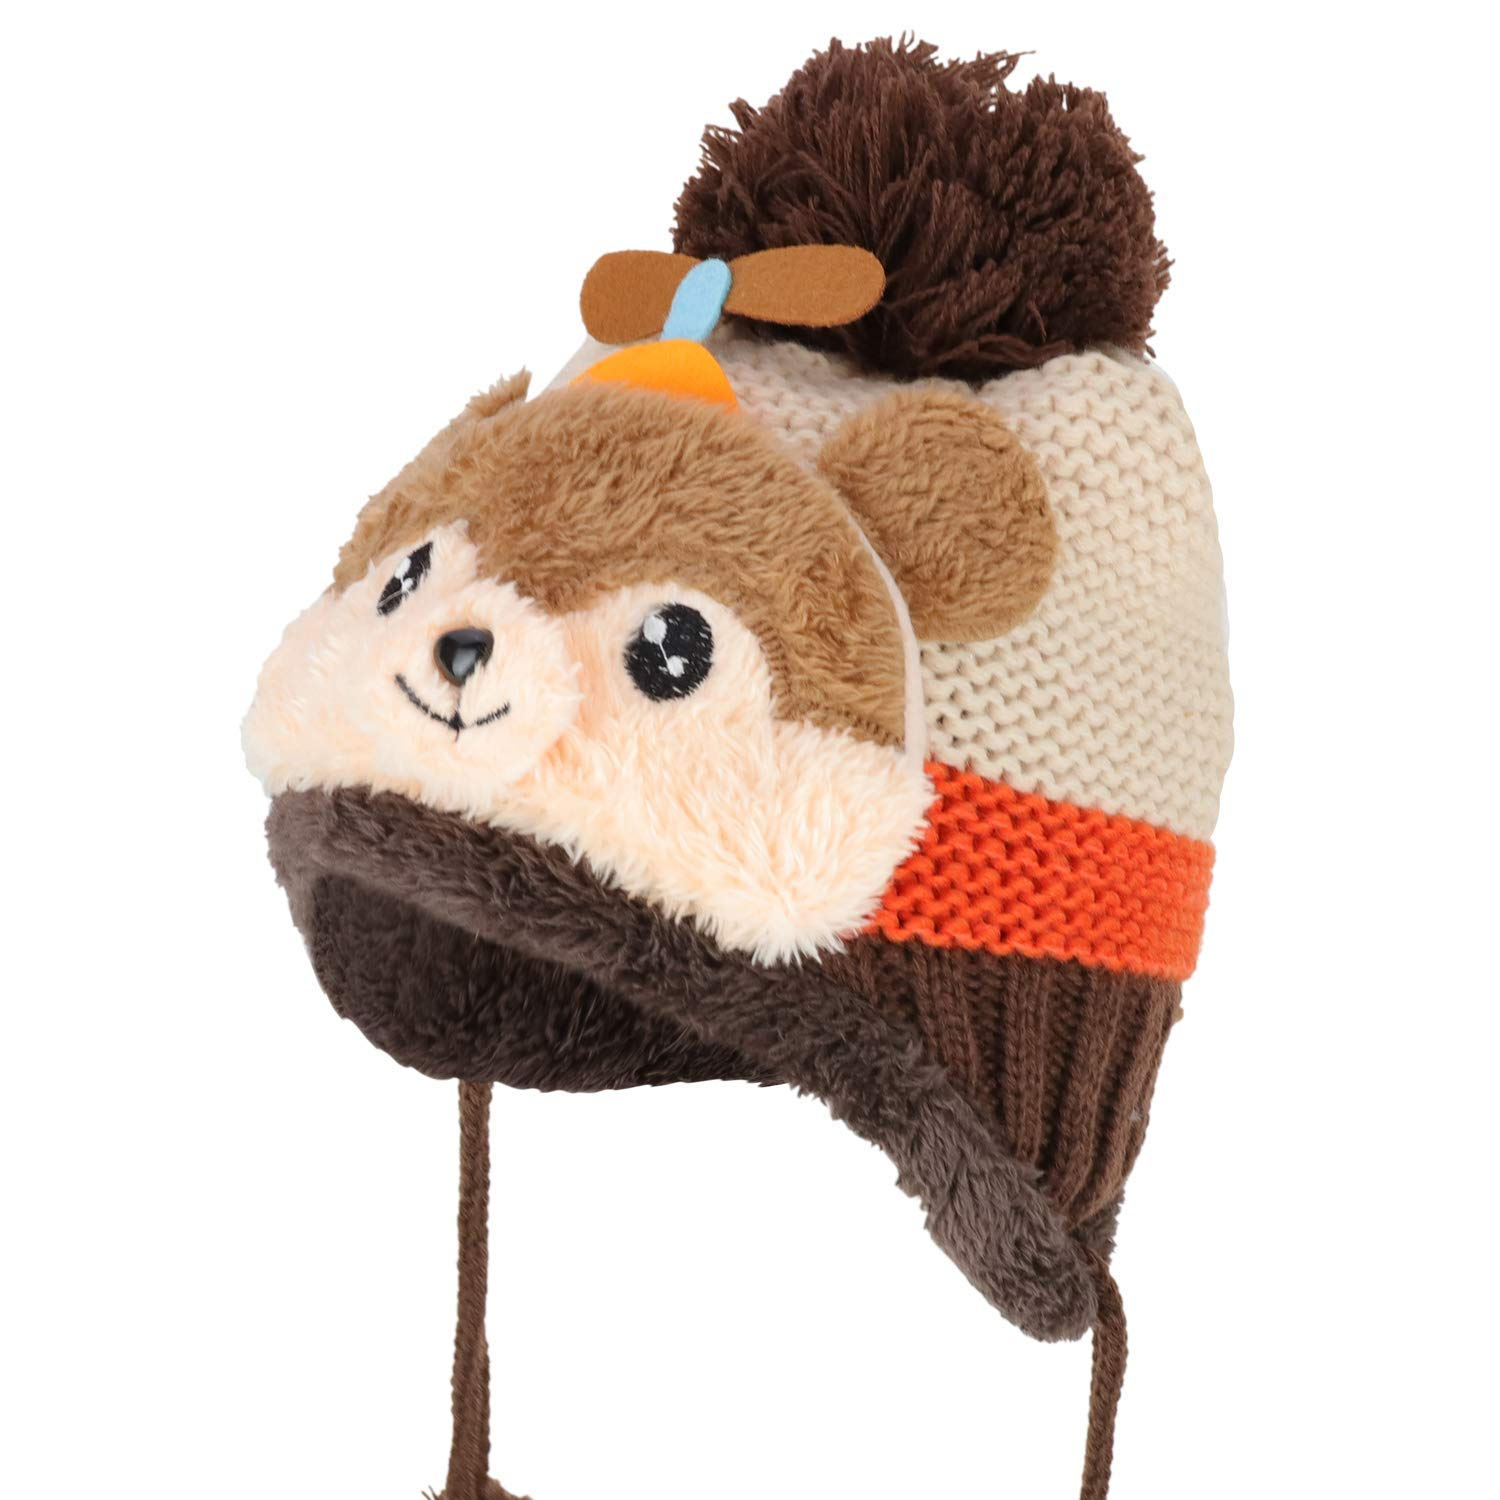 421d8756109 Get Quotations · Trendy Apparel Shop Kid s Youth Size Bear Pom Knit Beanie  with Tassel